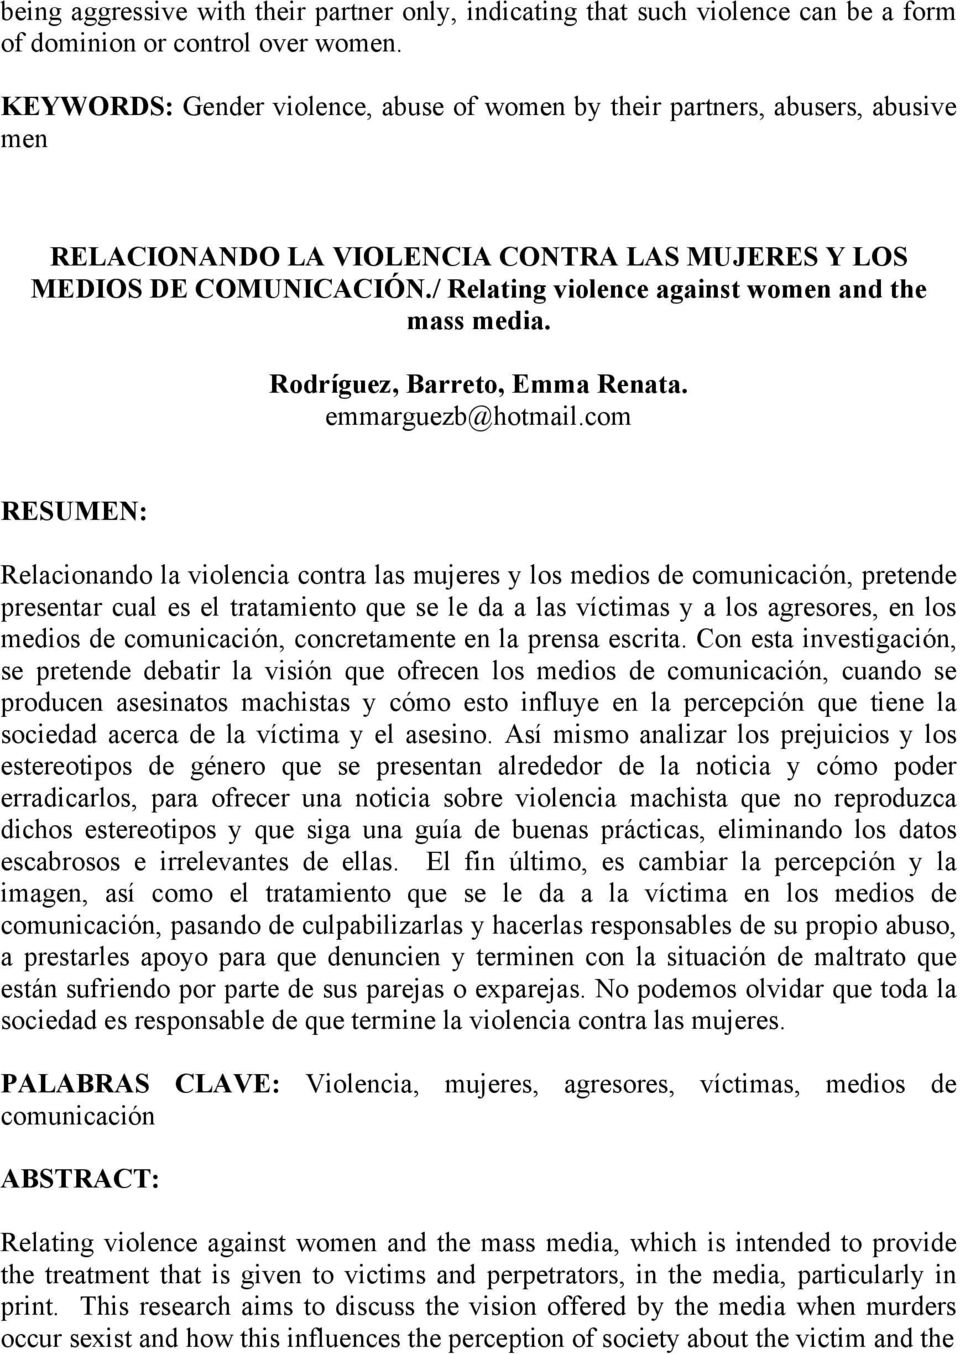 / Relating violence against women and the mass media. Rodríguez, Barreto, Emma Renata. emmarguezb@hotmail.